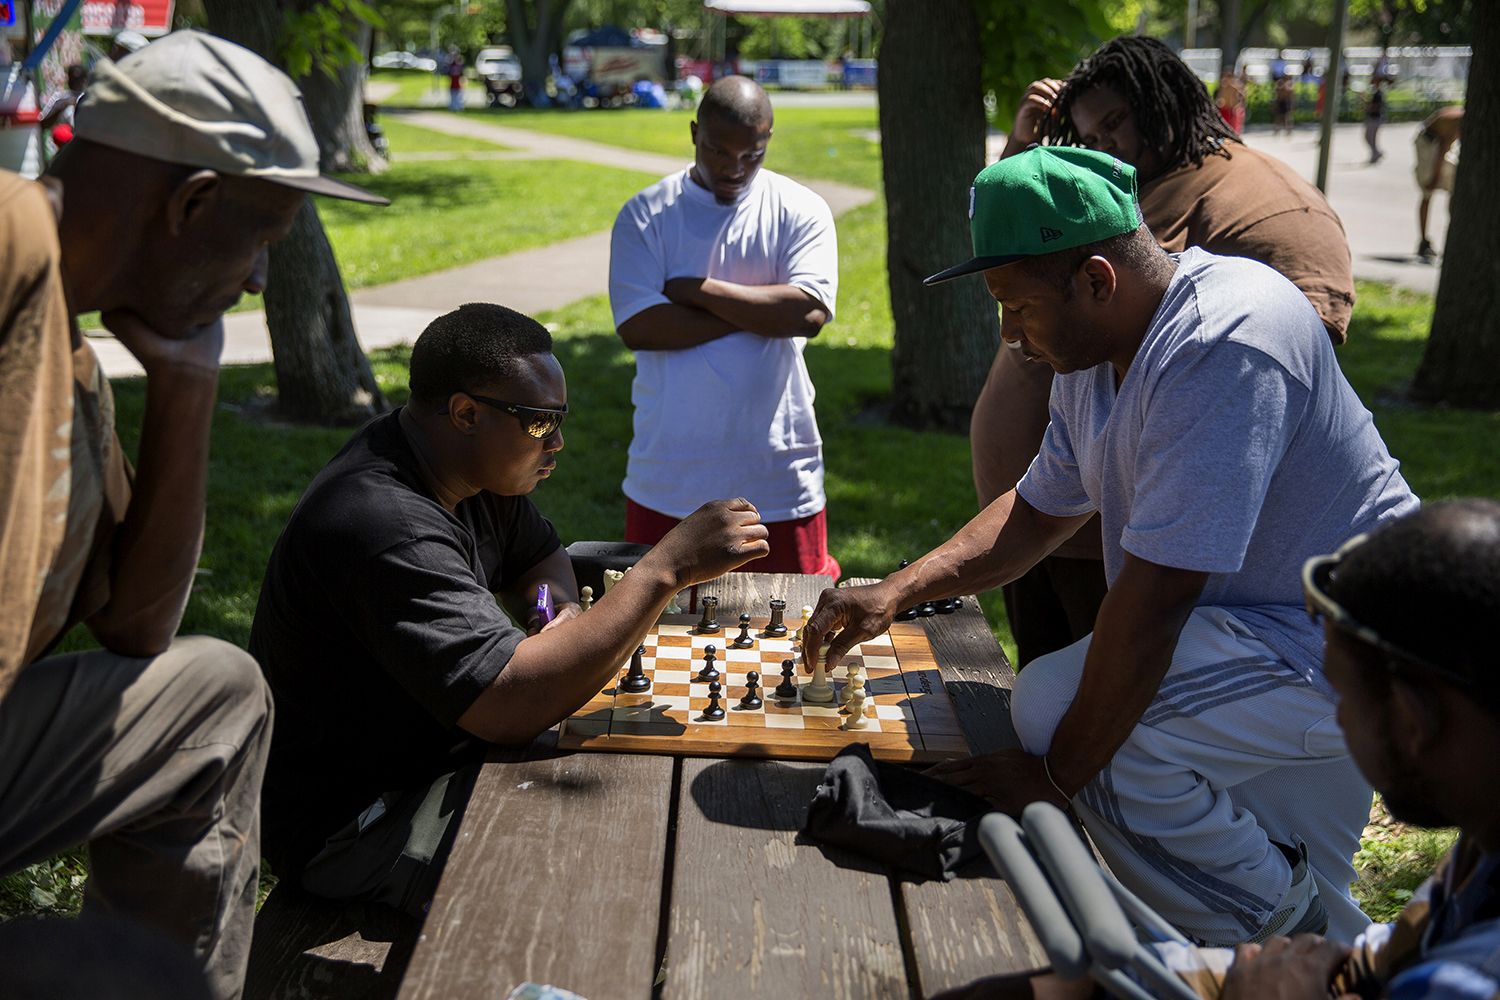 Portis Rice, left, and Eric Winkie Ellington face off across a chess board during the Juneteenth celebration at Comer Cox Park Saturday, June 14, 2014. Rich Saal/The State Journal-Register